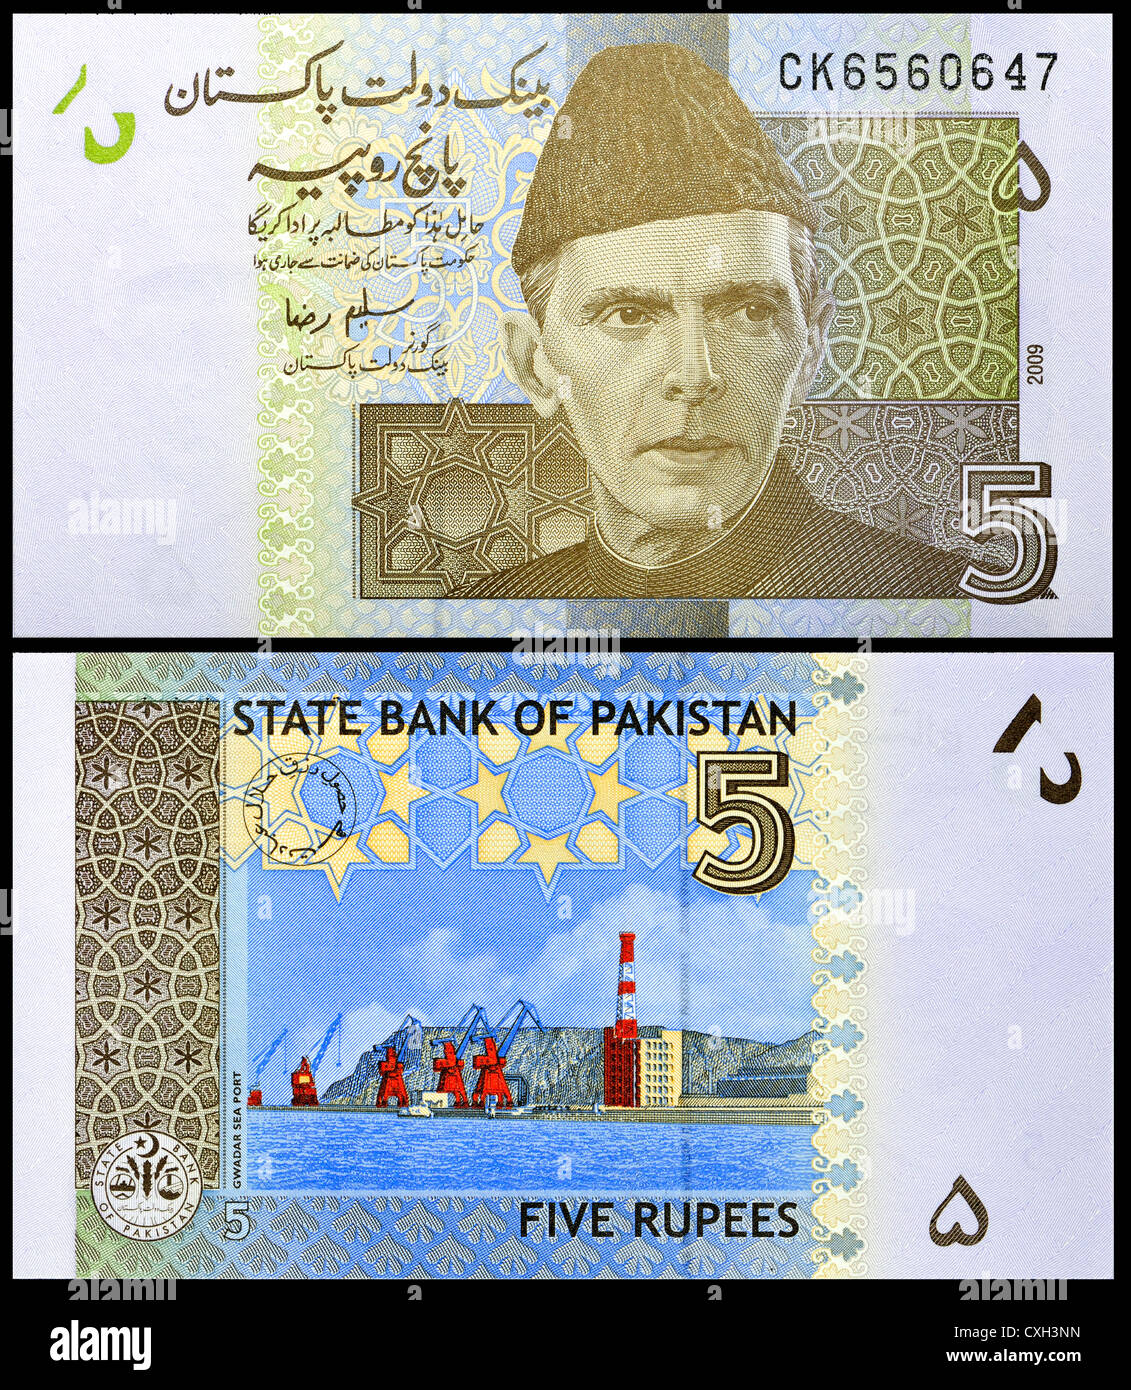 Pakistan 5 Rupee banknote (2009) Portrait of Quaid-I-Azam - Stock Image